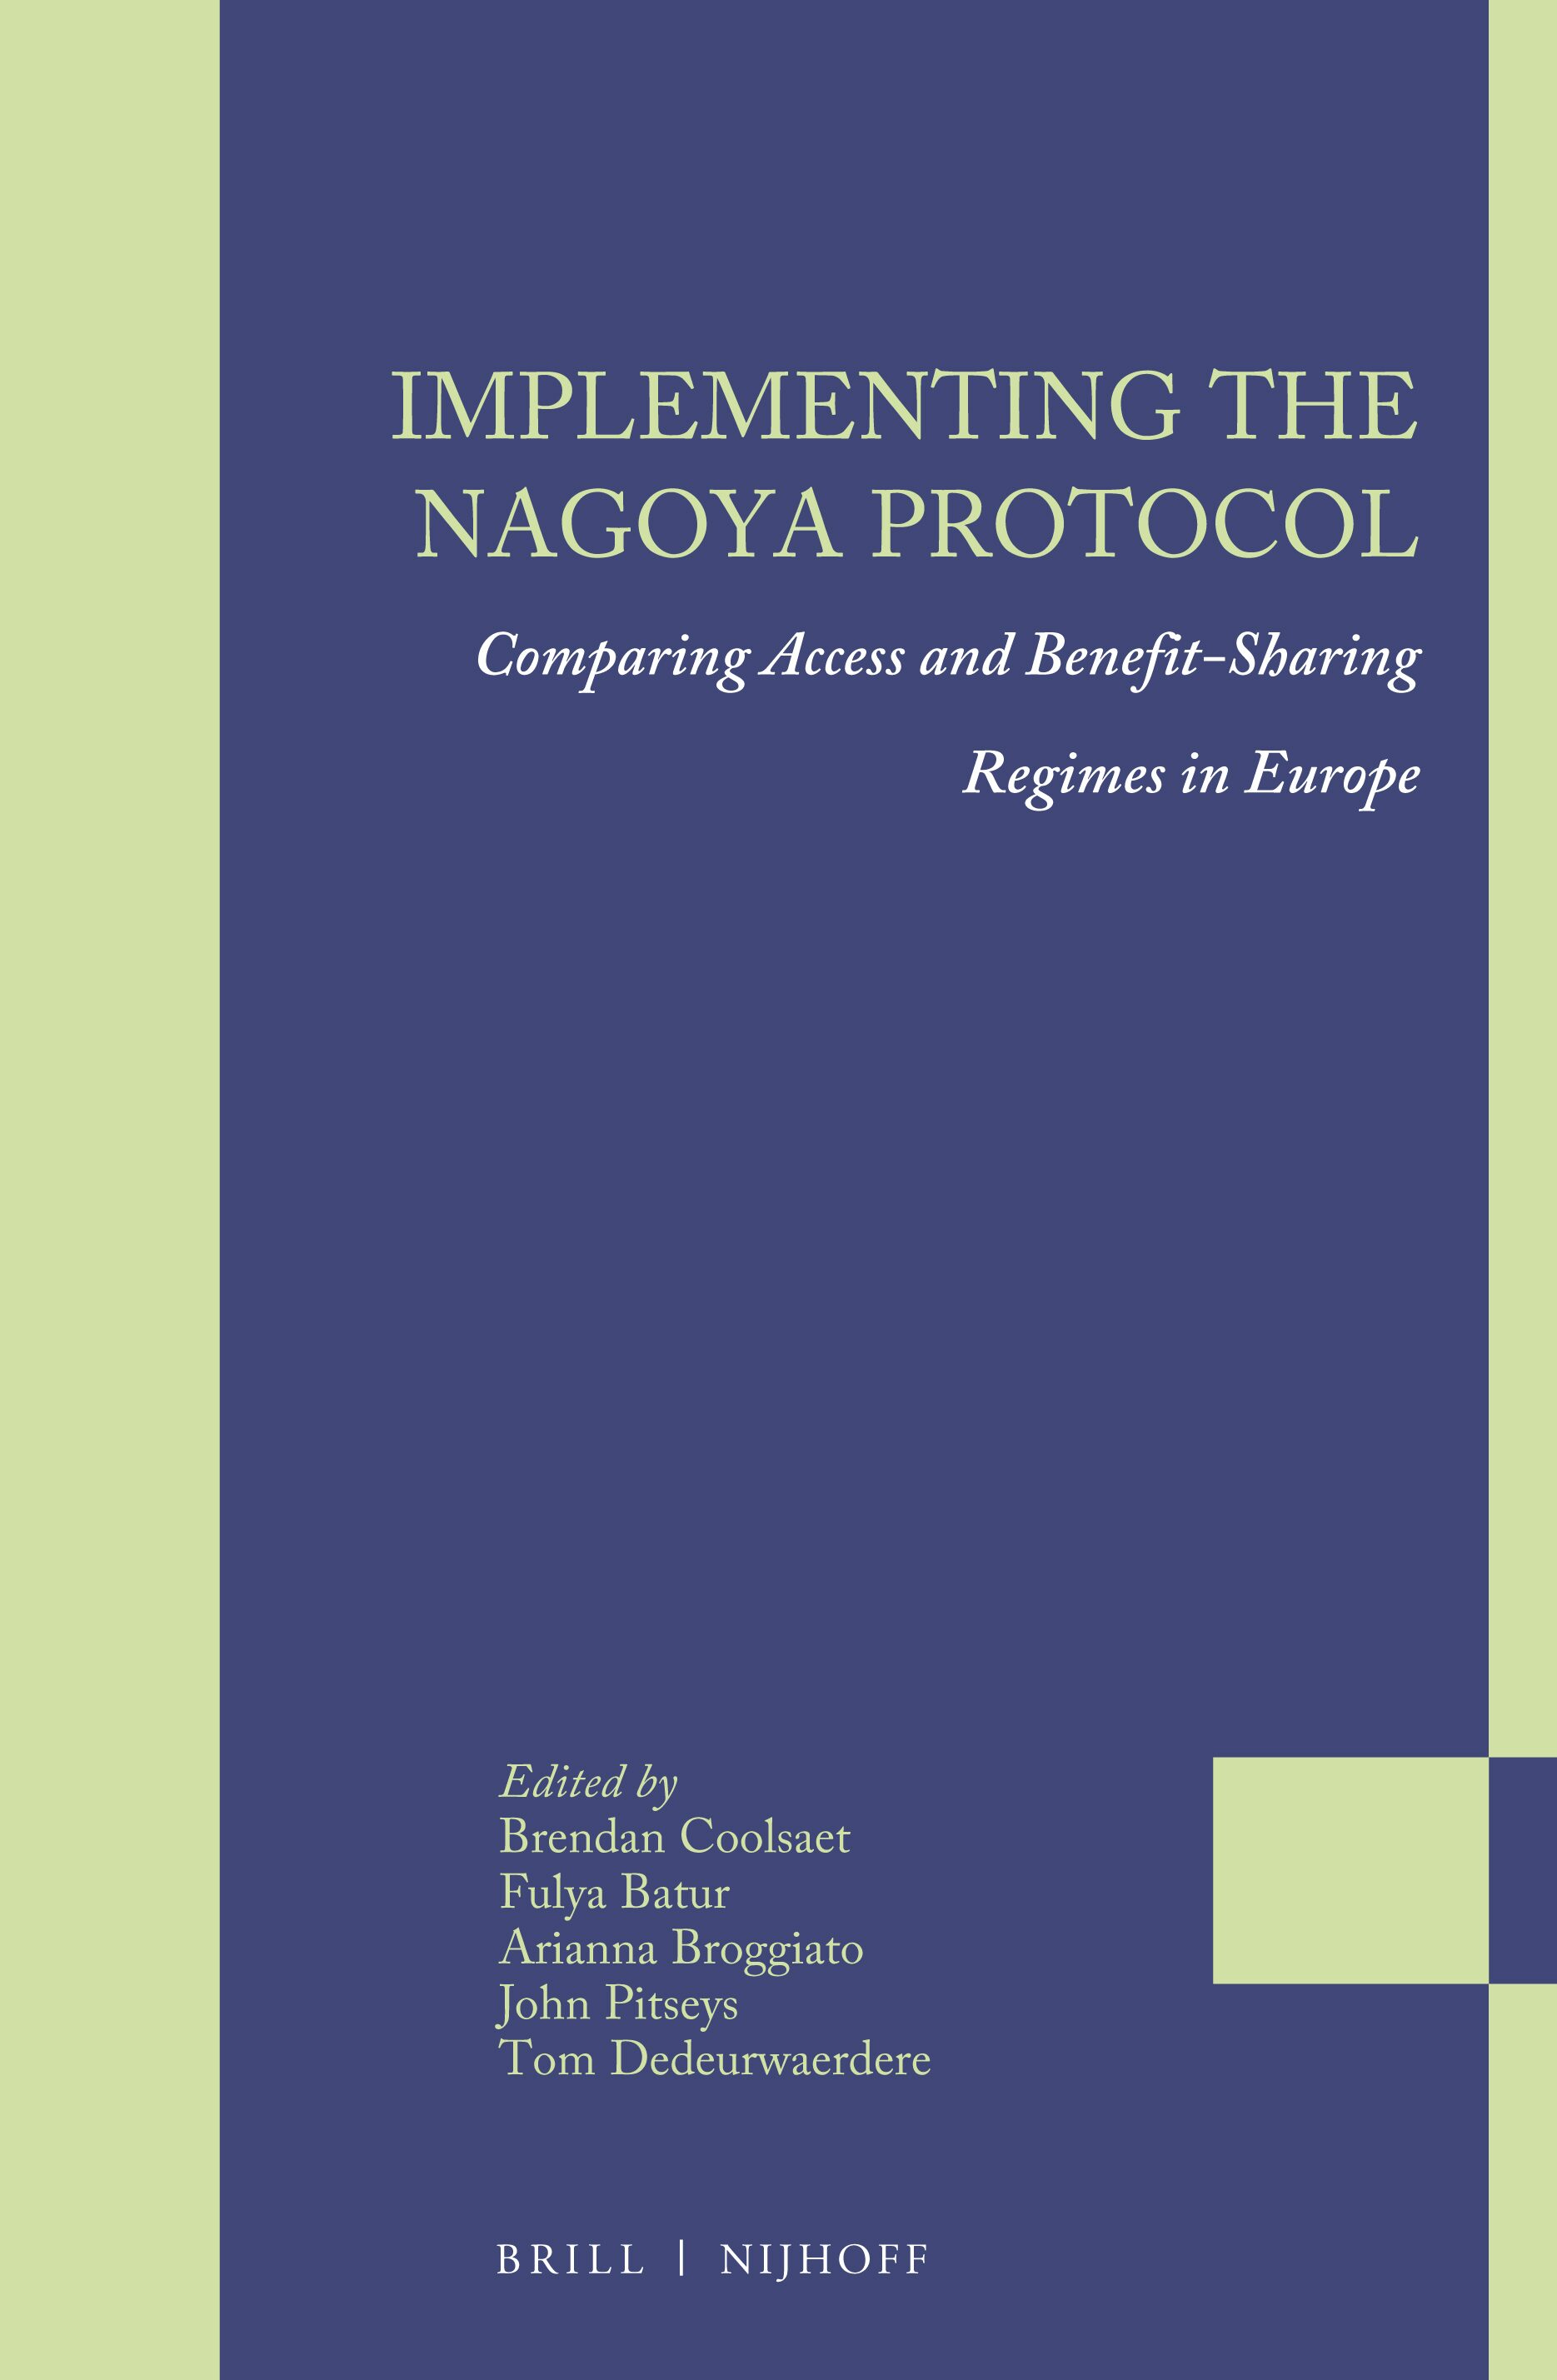 Implementing the Nagoya Protocol: Comparing Access and Benefit-Sharing Regimes in Europe